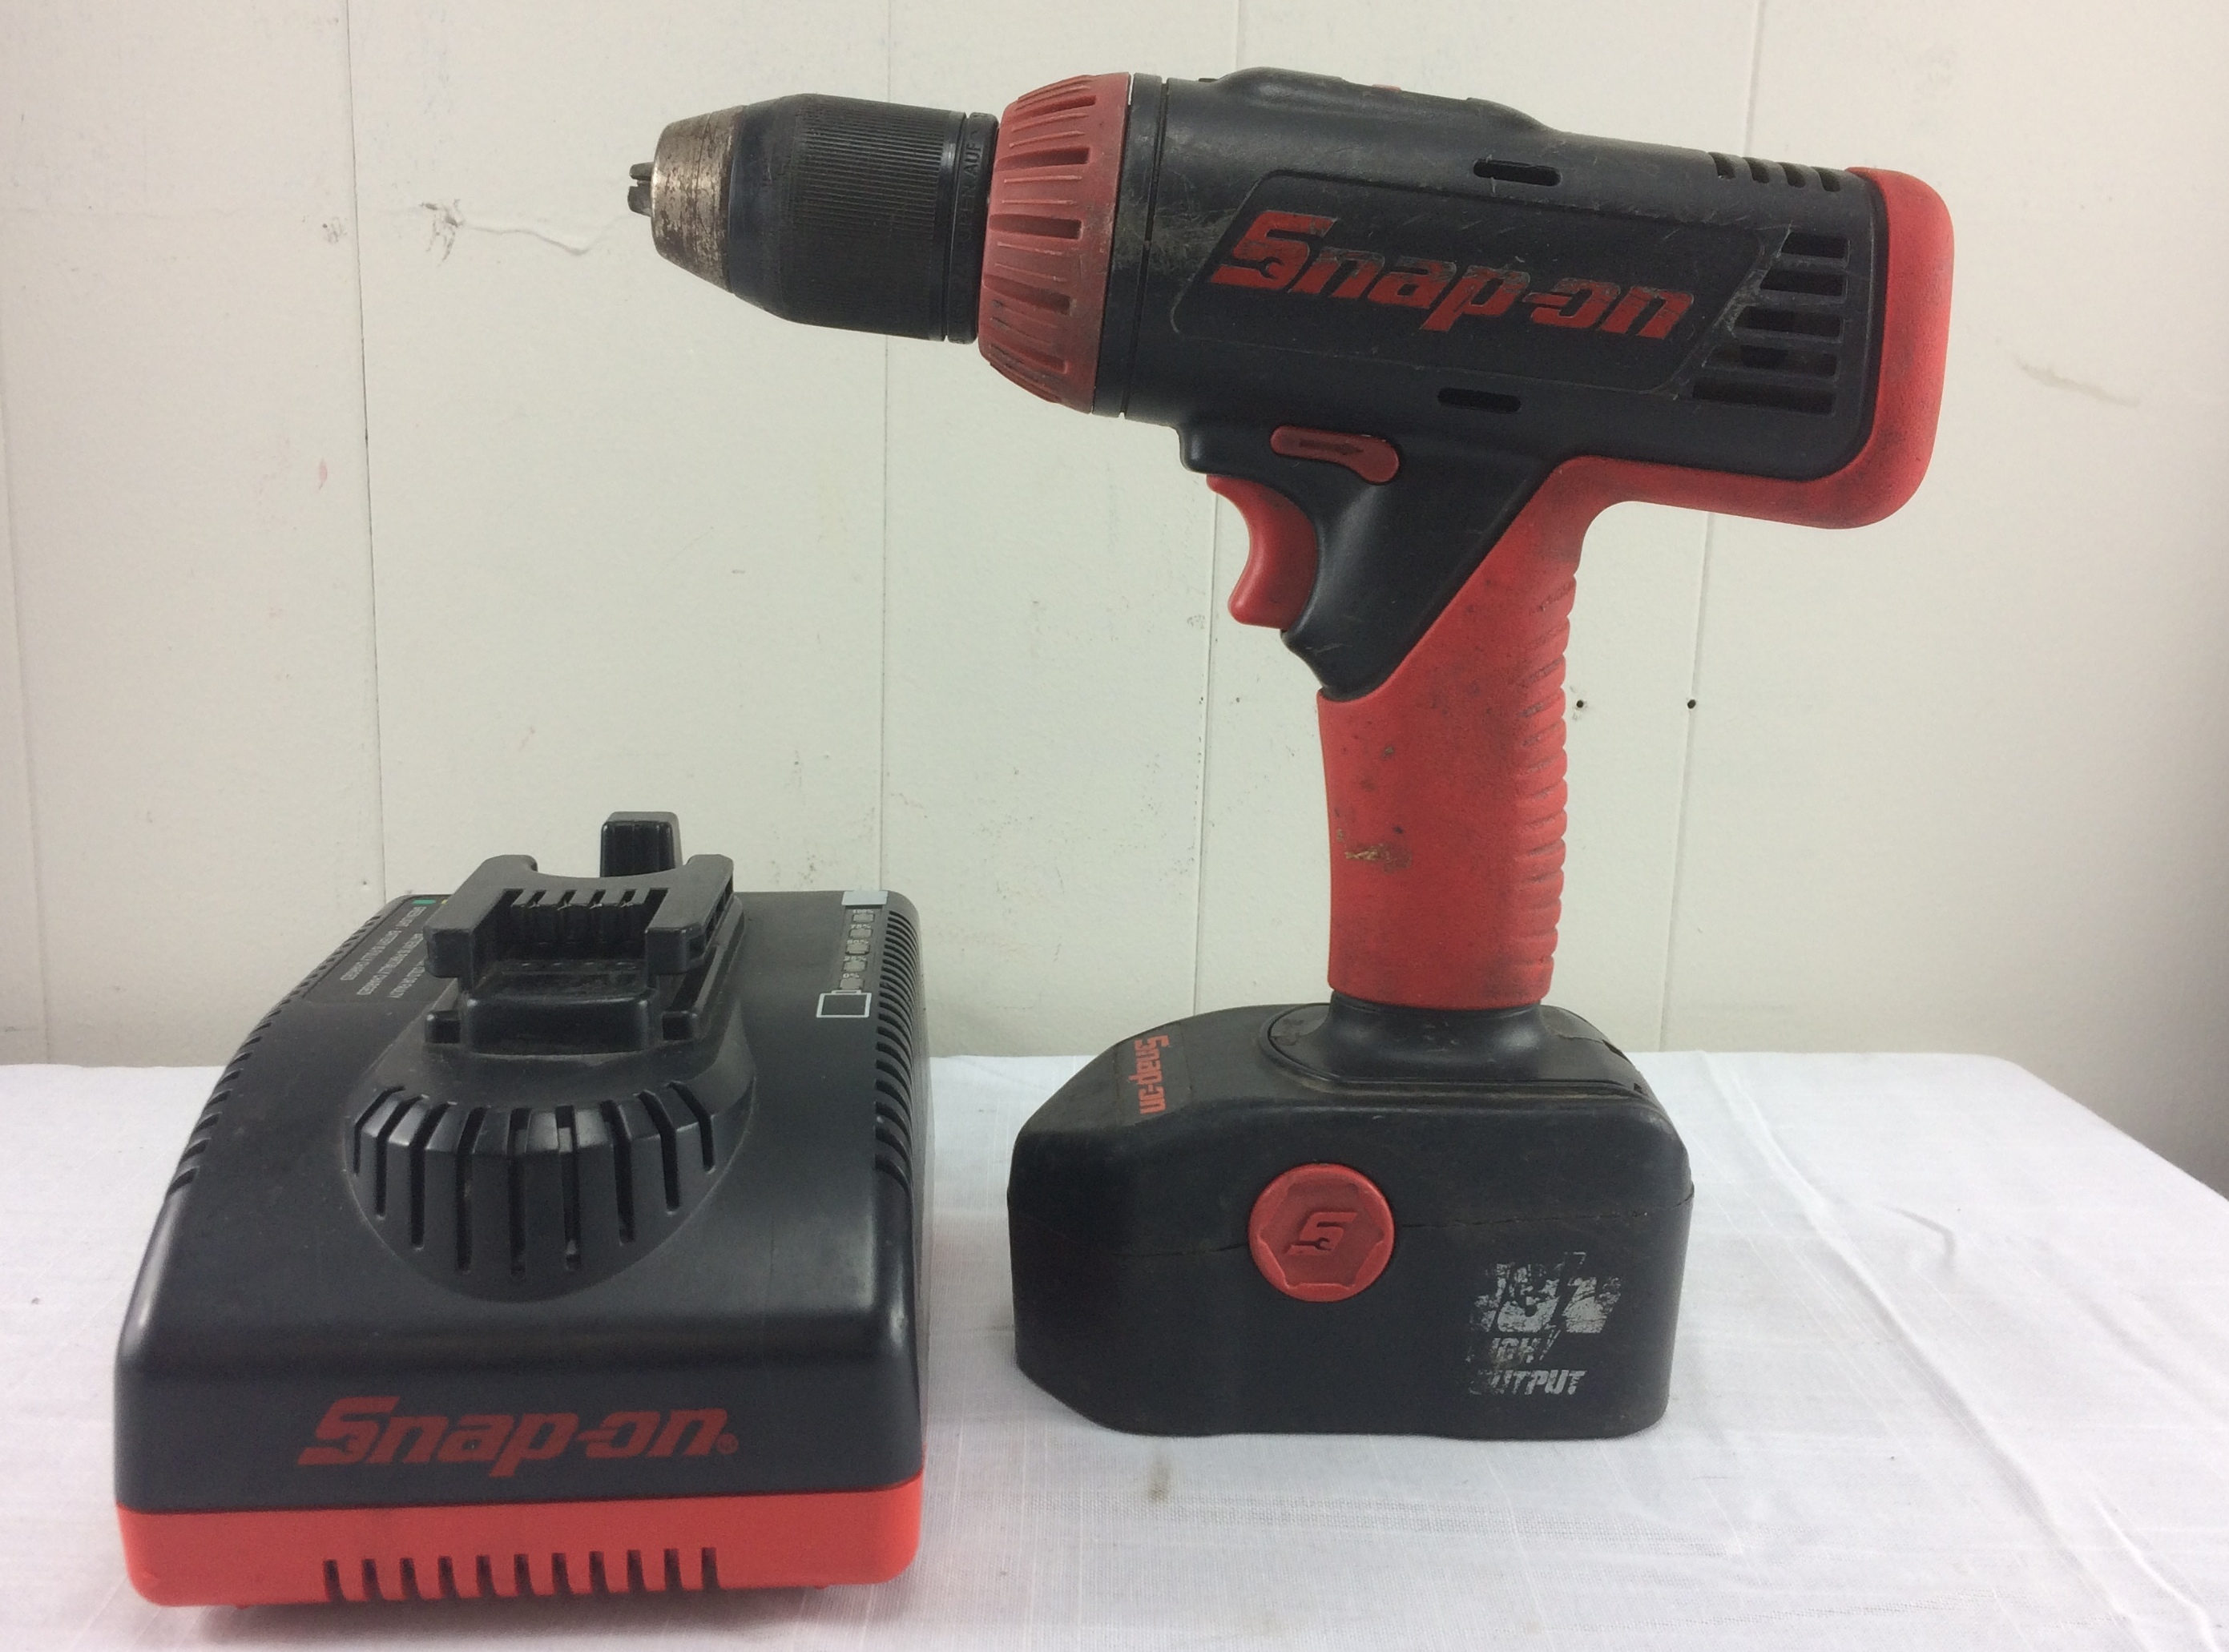 Snap On CDR4850 18V Cordless Drill/Driver